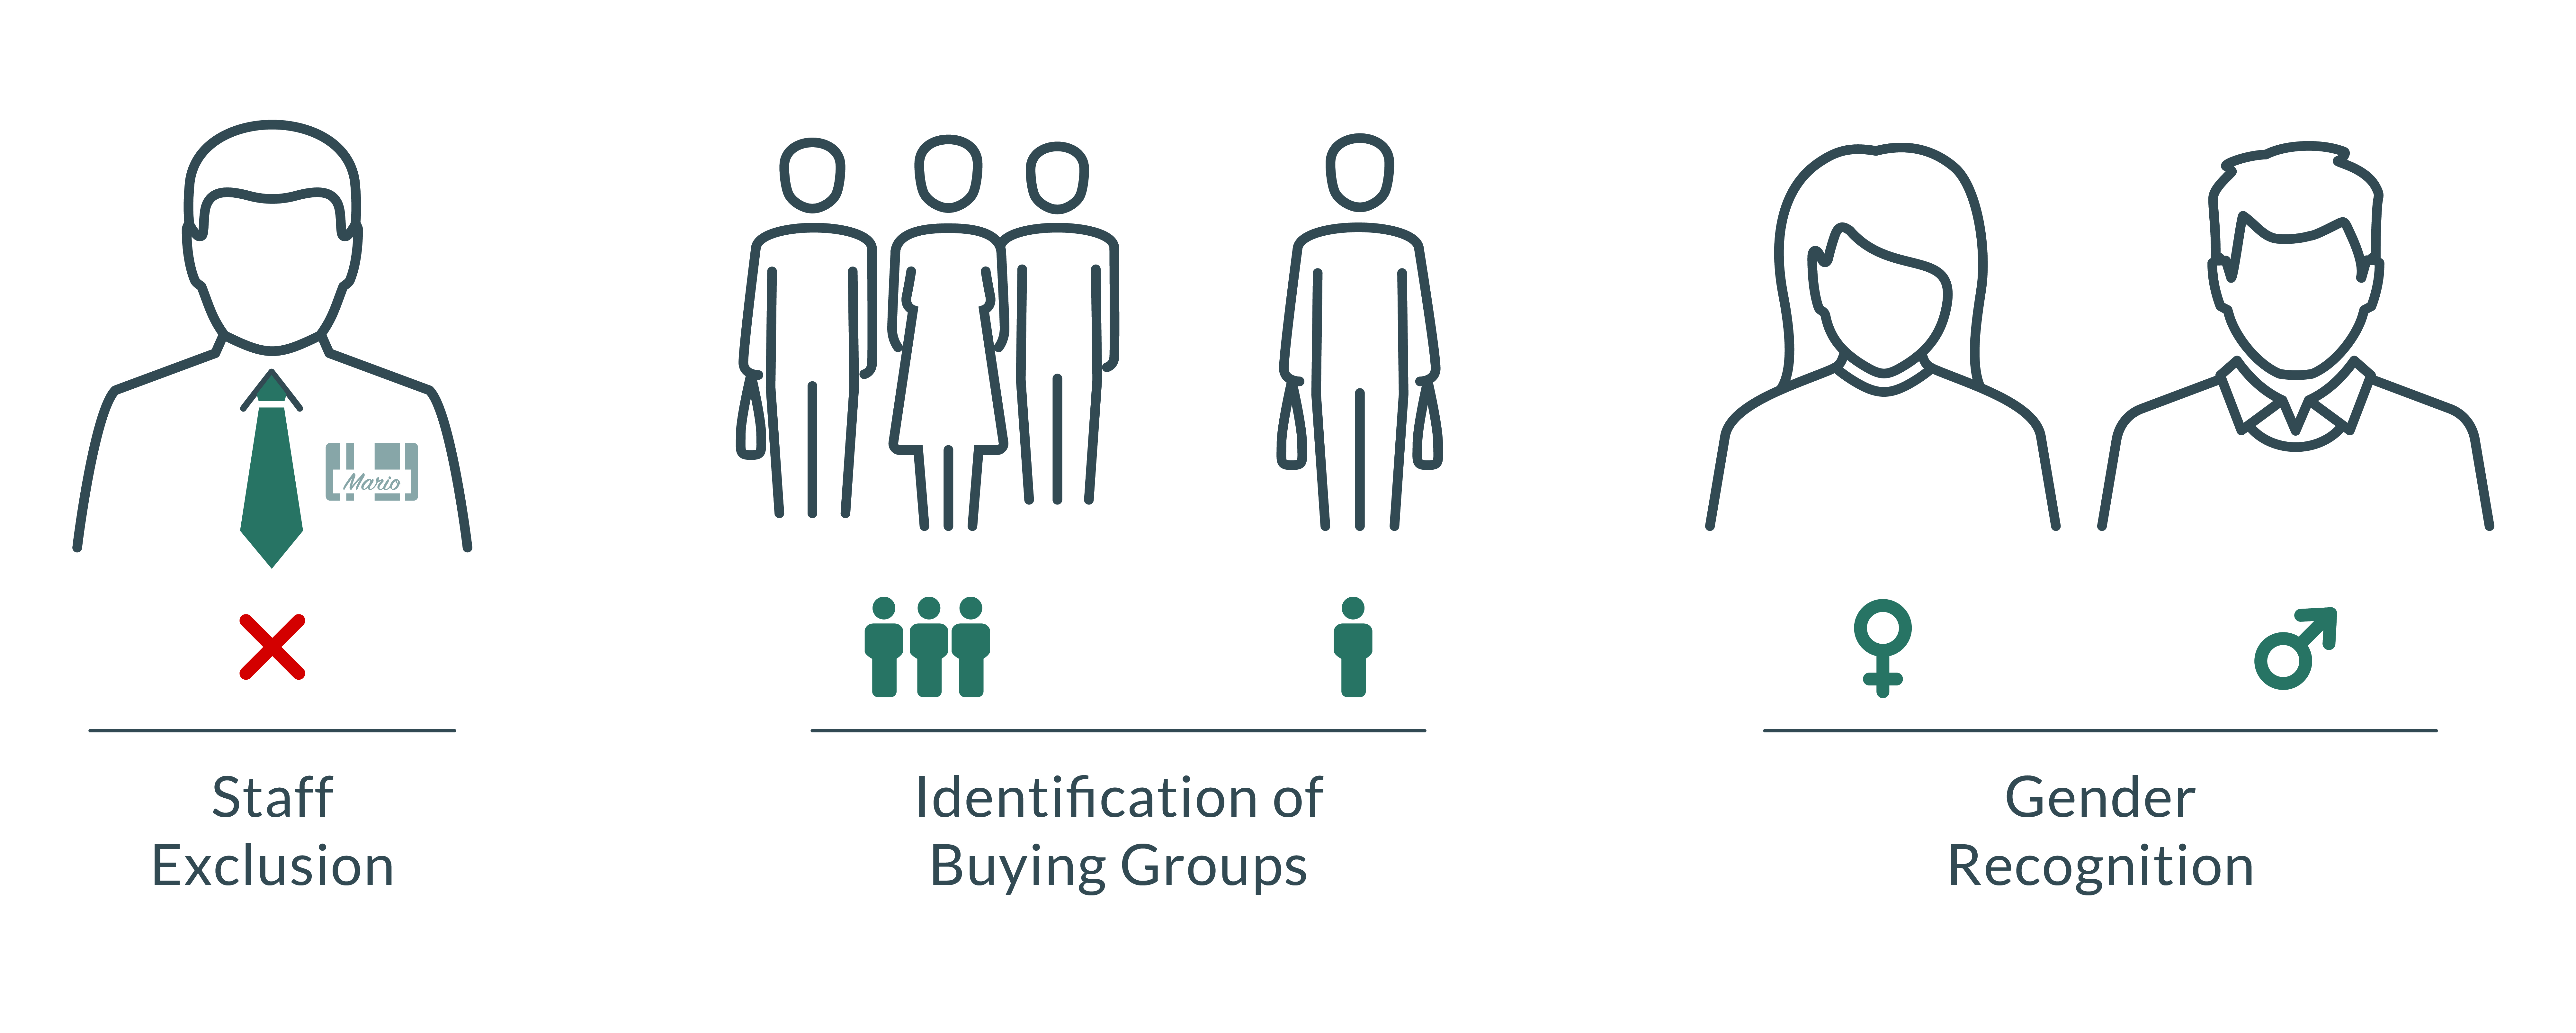 staff exclusion, identification of buying groups, gender recognition